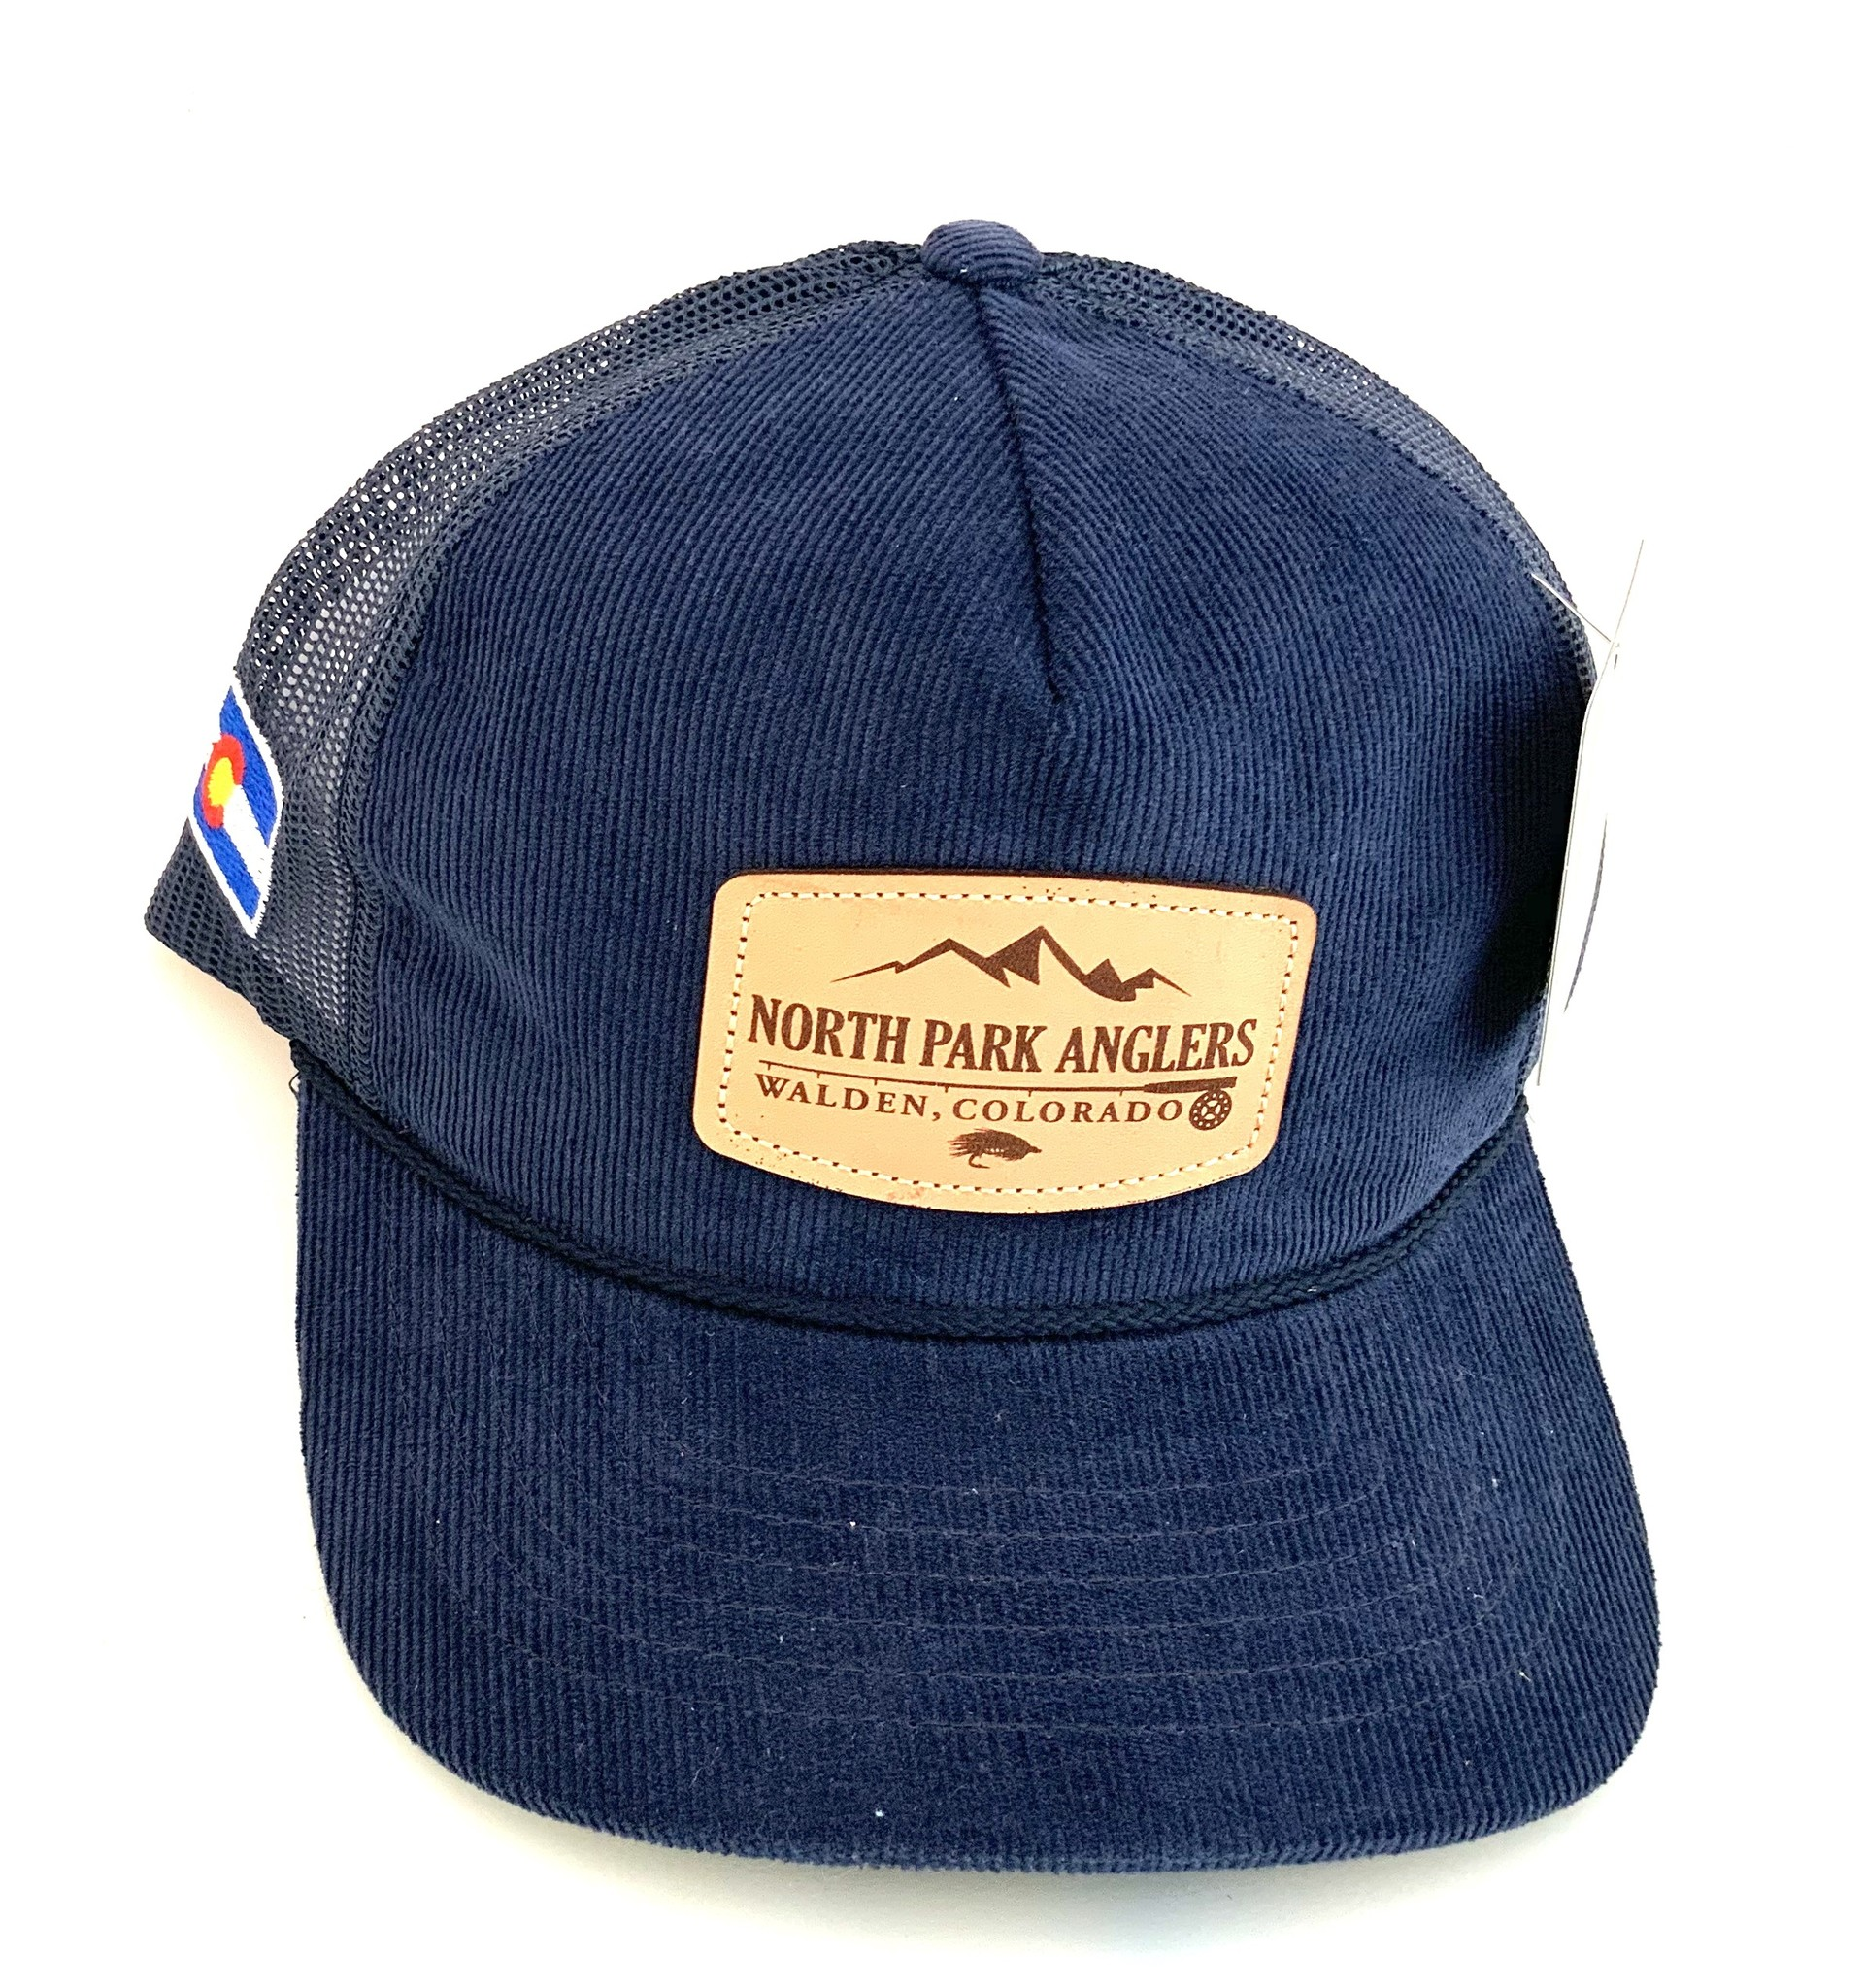 Richardson NPA Trucker Hats With Leather Patch